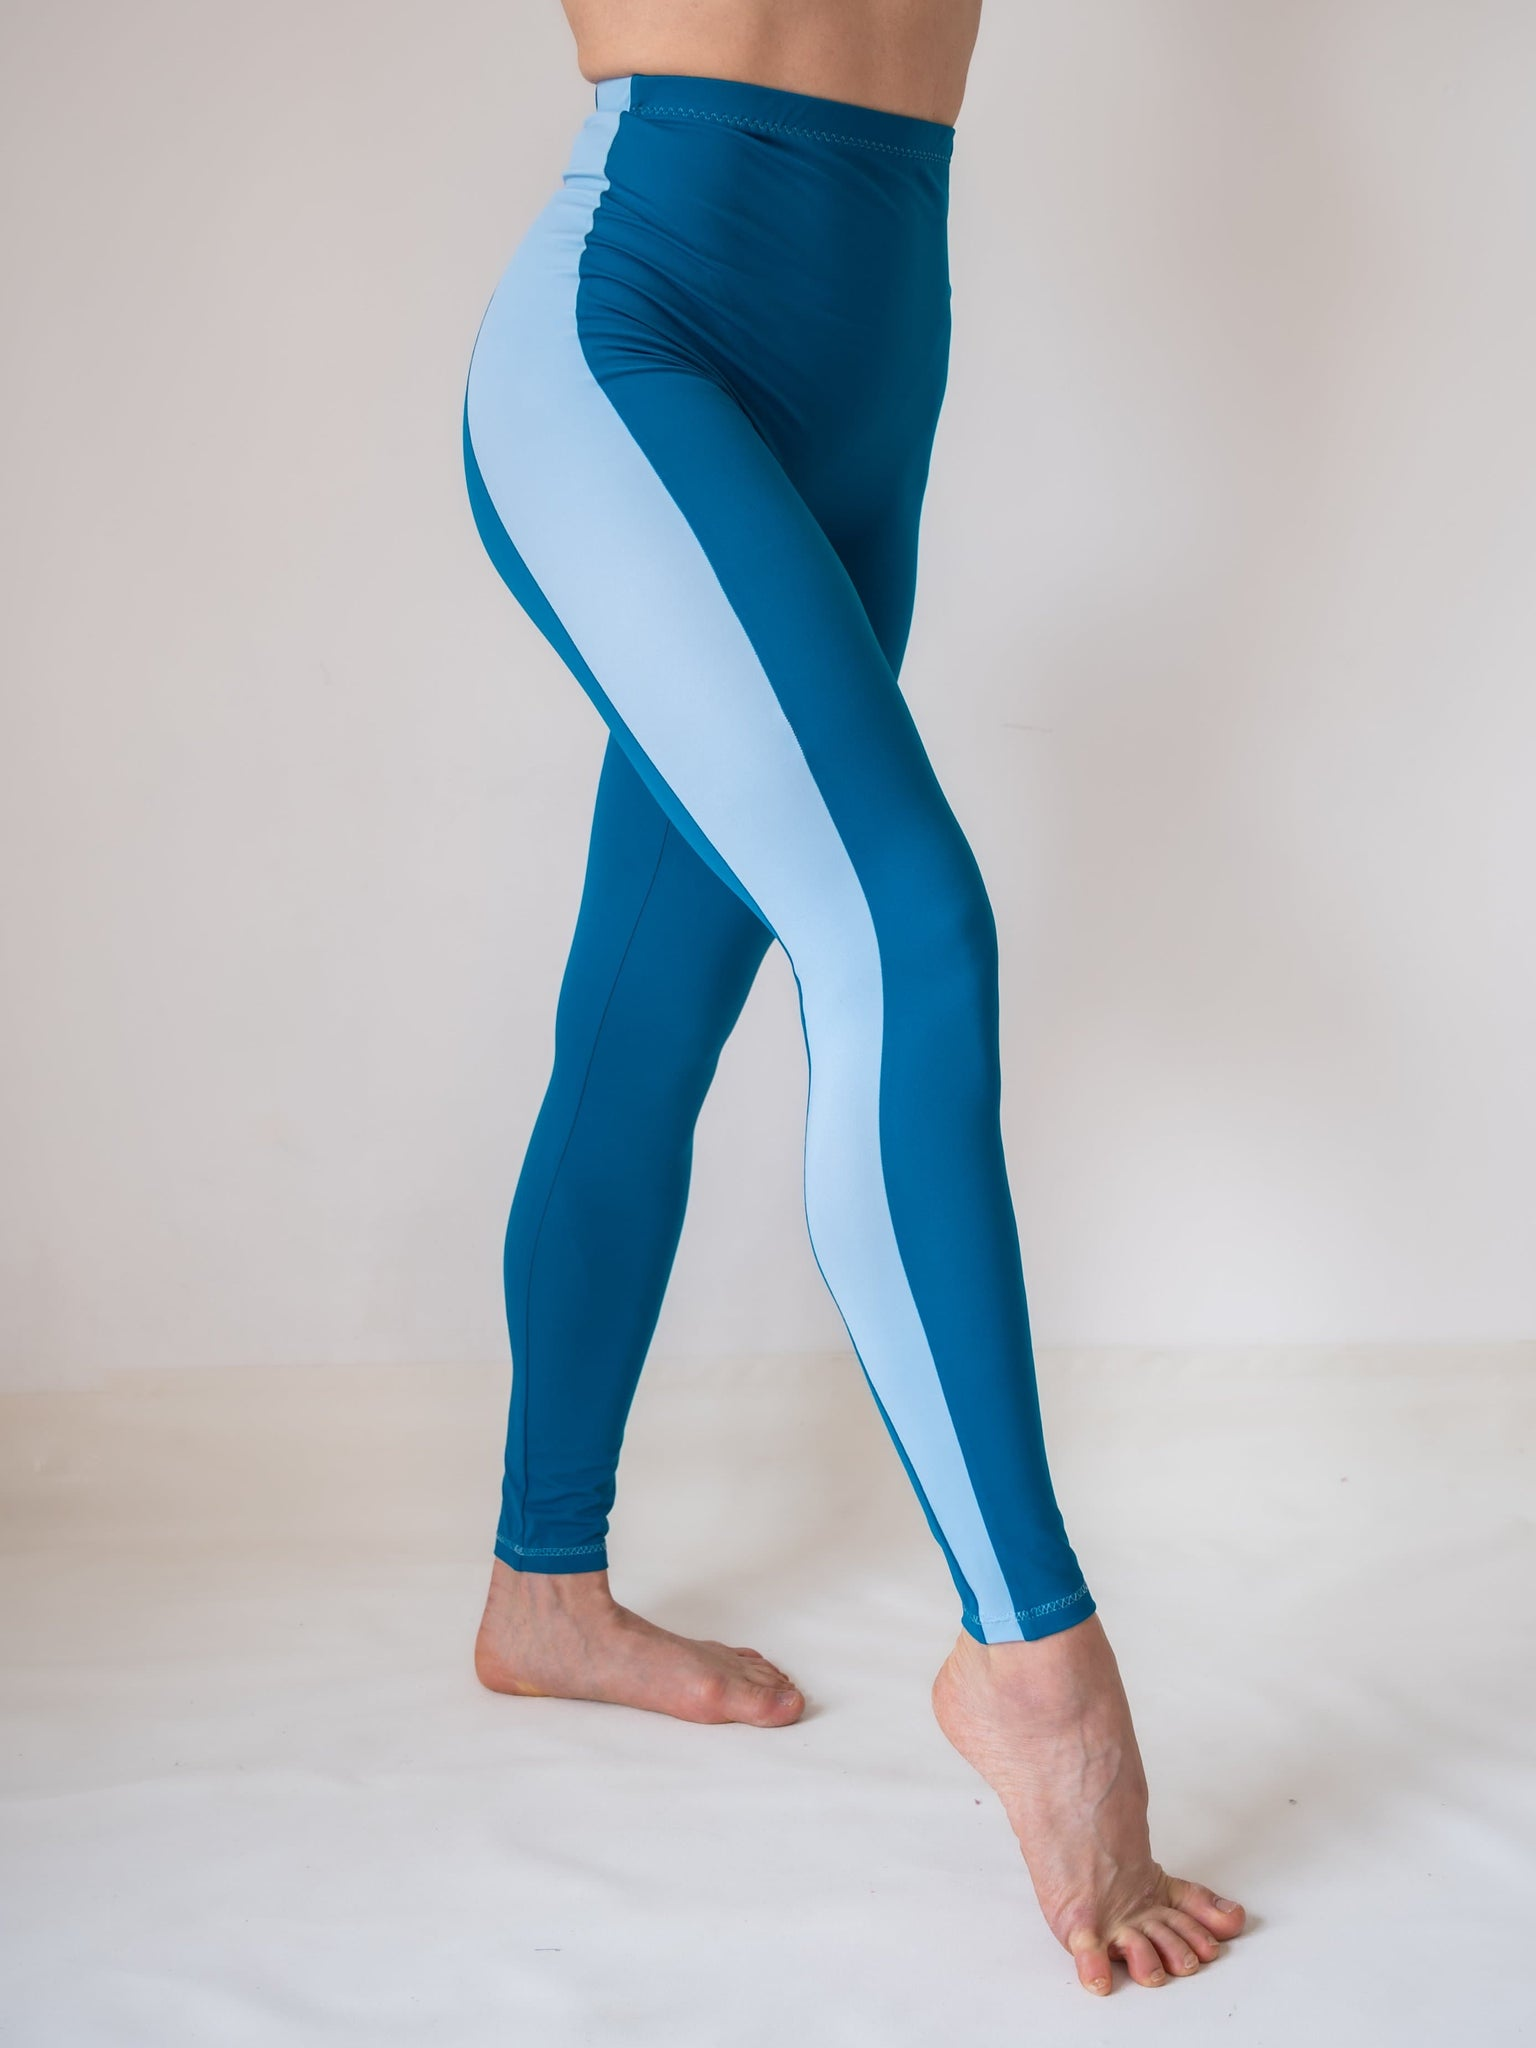 Petrol full Length High Waisted Yoga and Fitness Legging for Girls and Women by Lena Activewear